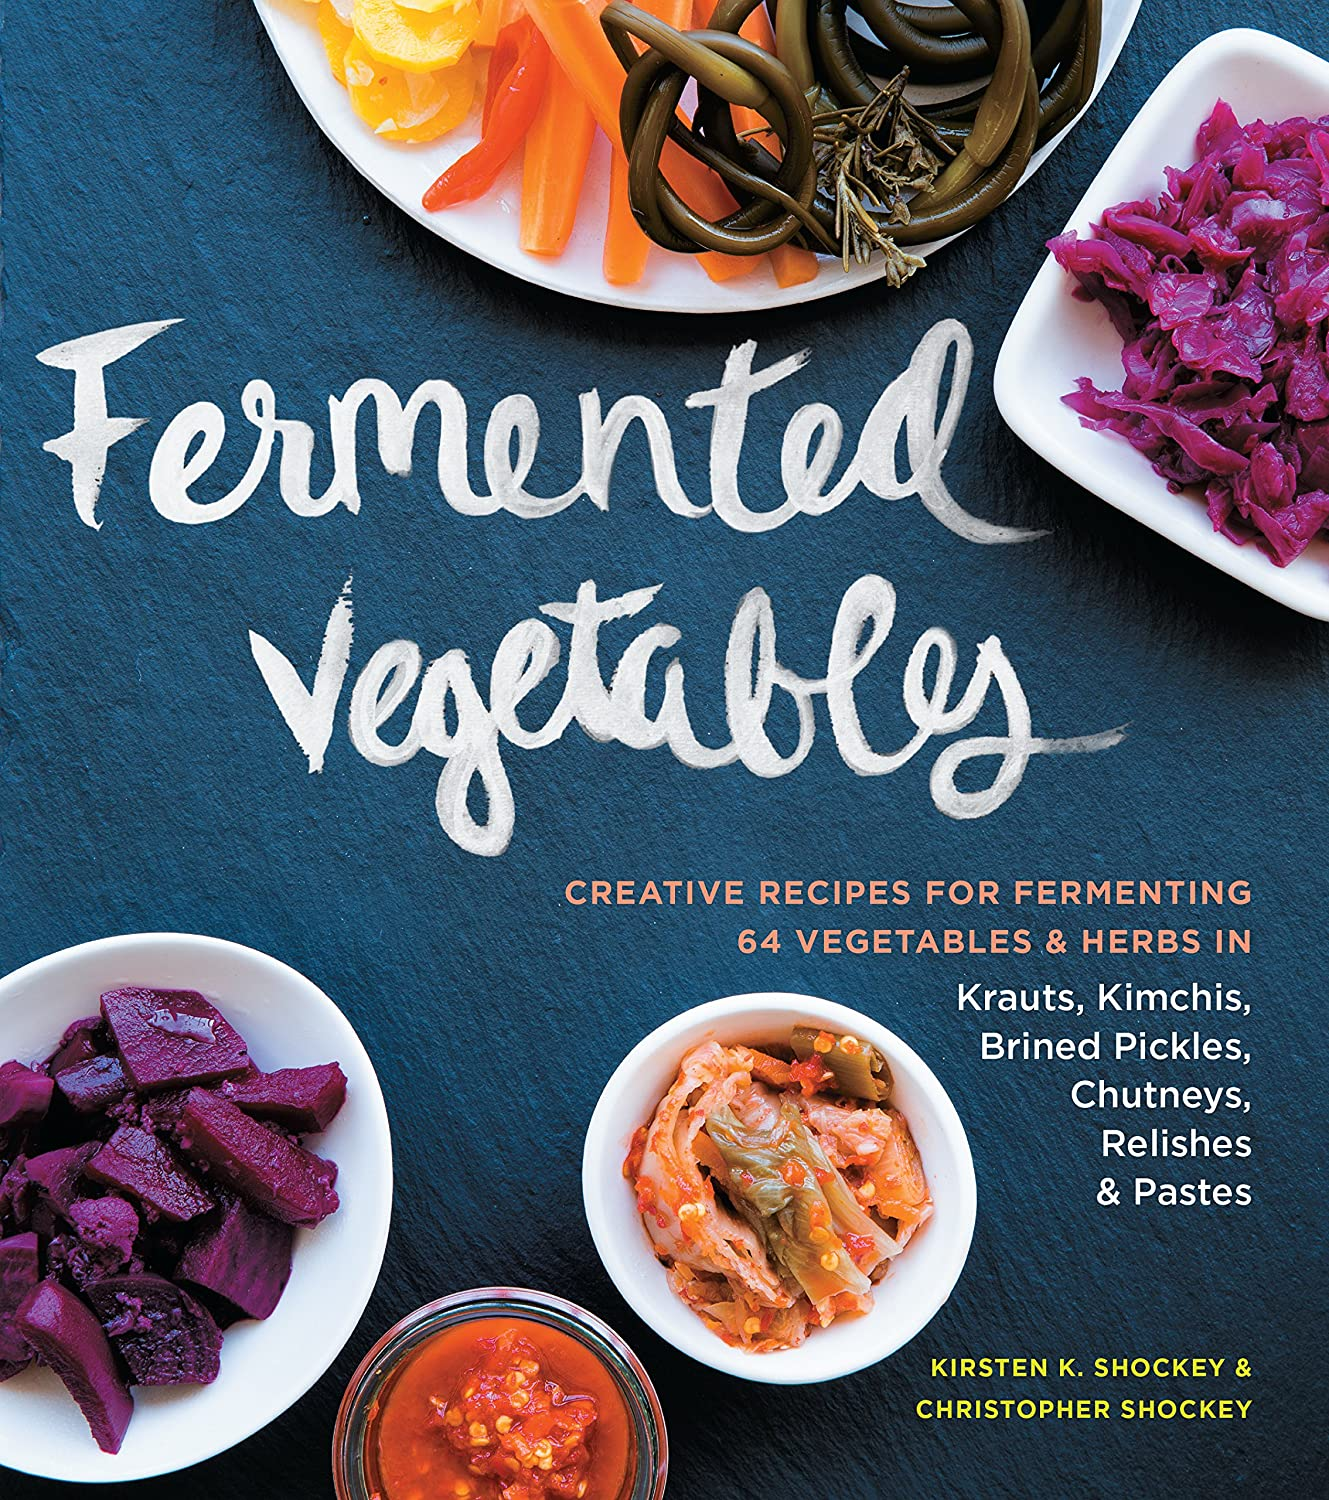 The Art of Cooking with Vegetables